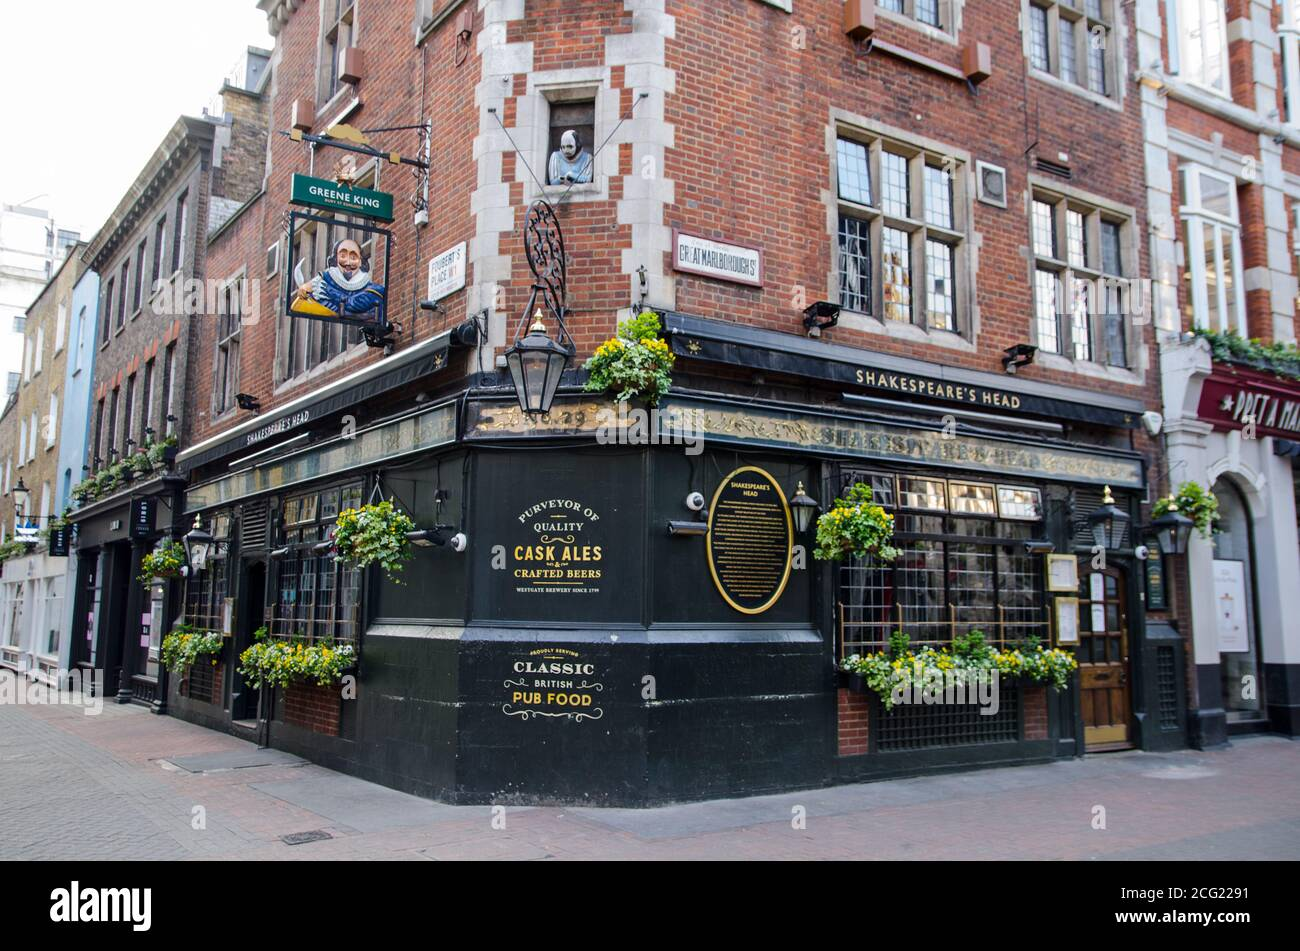 London, UK - April 24, 2020: Historic Shakespeare's Head pub in Soho, central London on an evening during COVID lockdown. Stock Photo